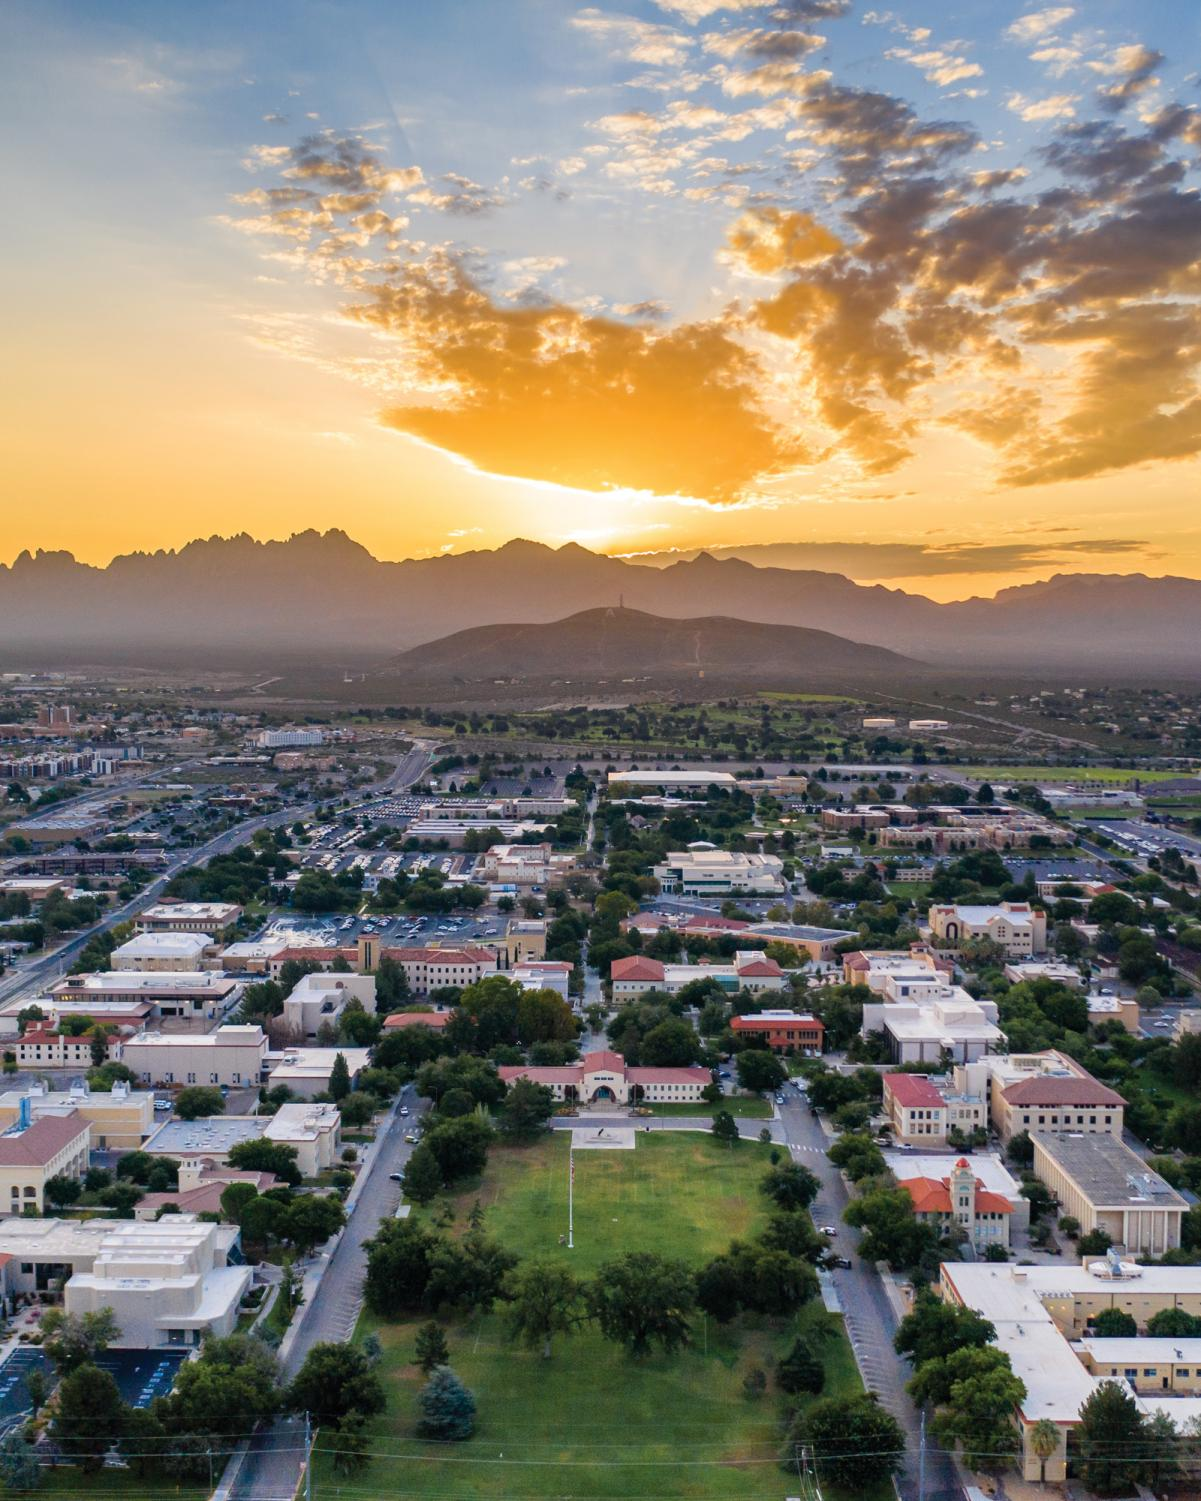 Nmsu S Return To Campus Plan And What Students Need To Know Nmsu